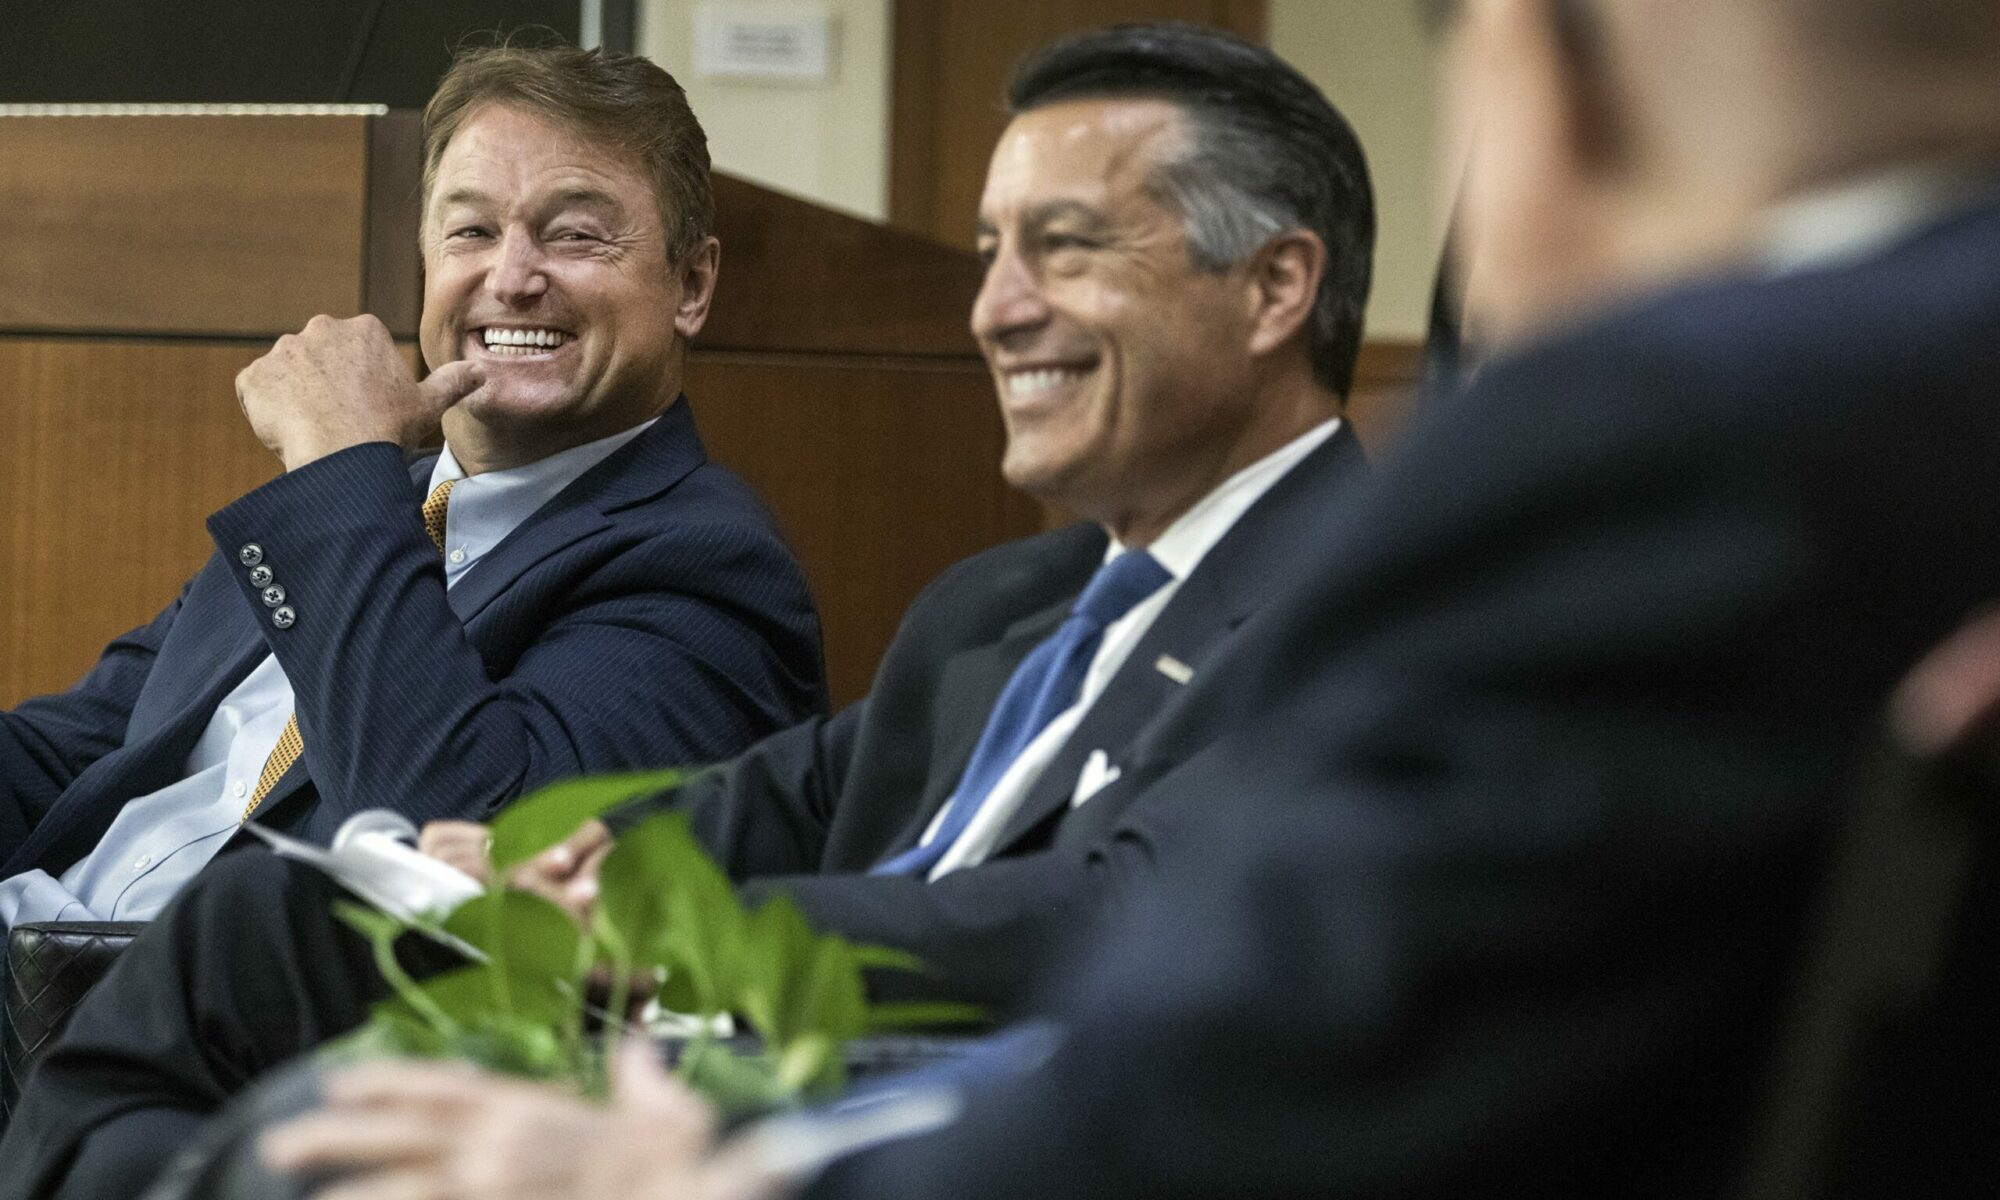 Former Nevada Sen. Dean Heller, left, and former Gov. Brian Sandoval during the launch of the new Law and Leadership Program at the UNLV